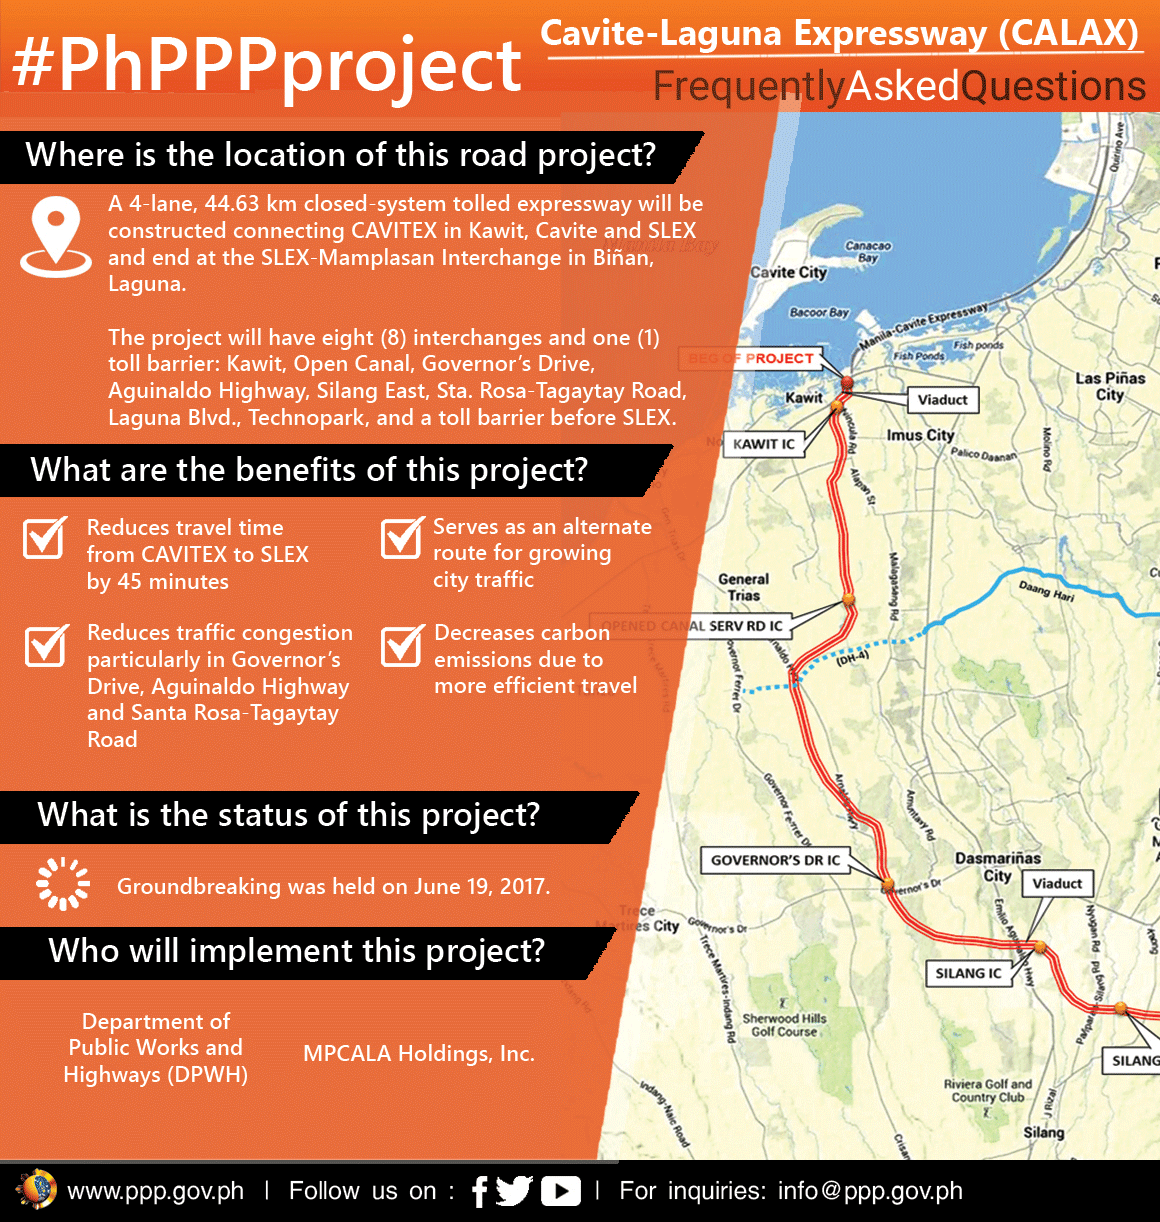 Cavite-Laguna Expressway (CaLaX) Project – Frequently Asked